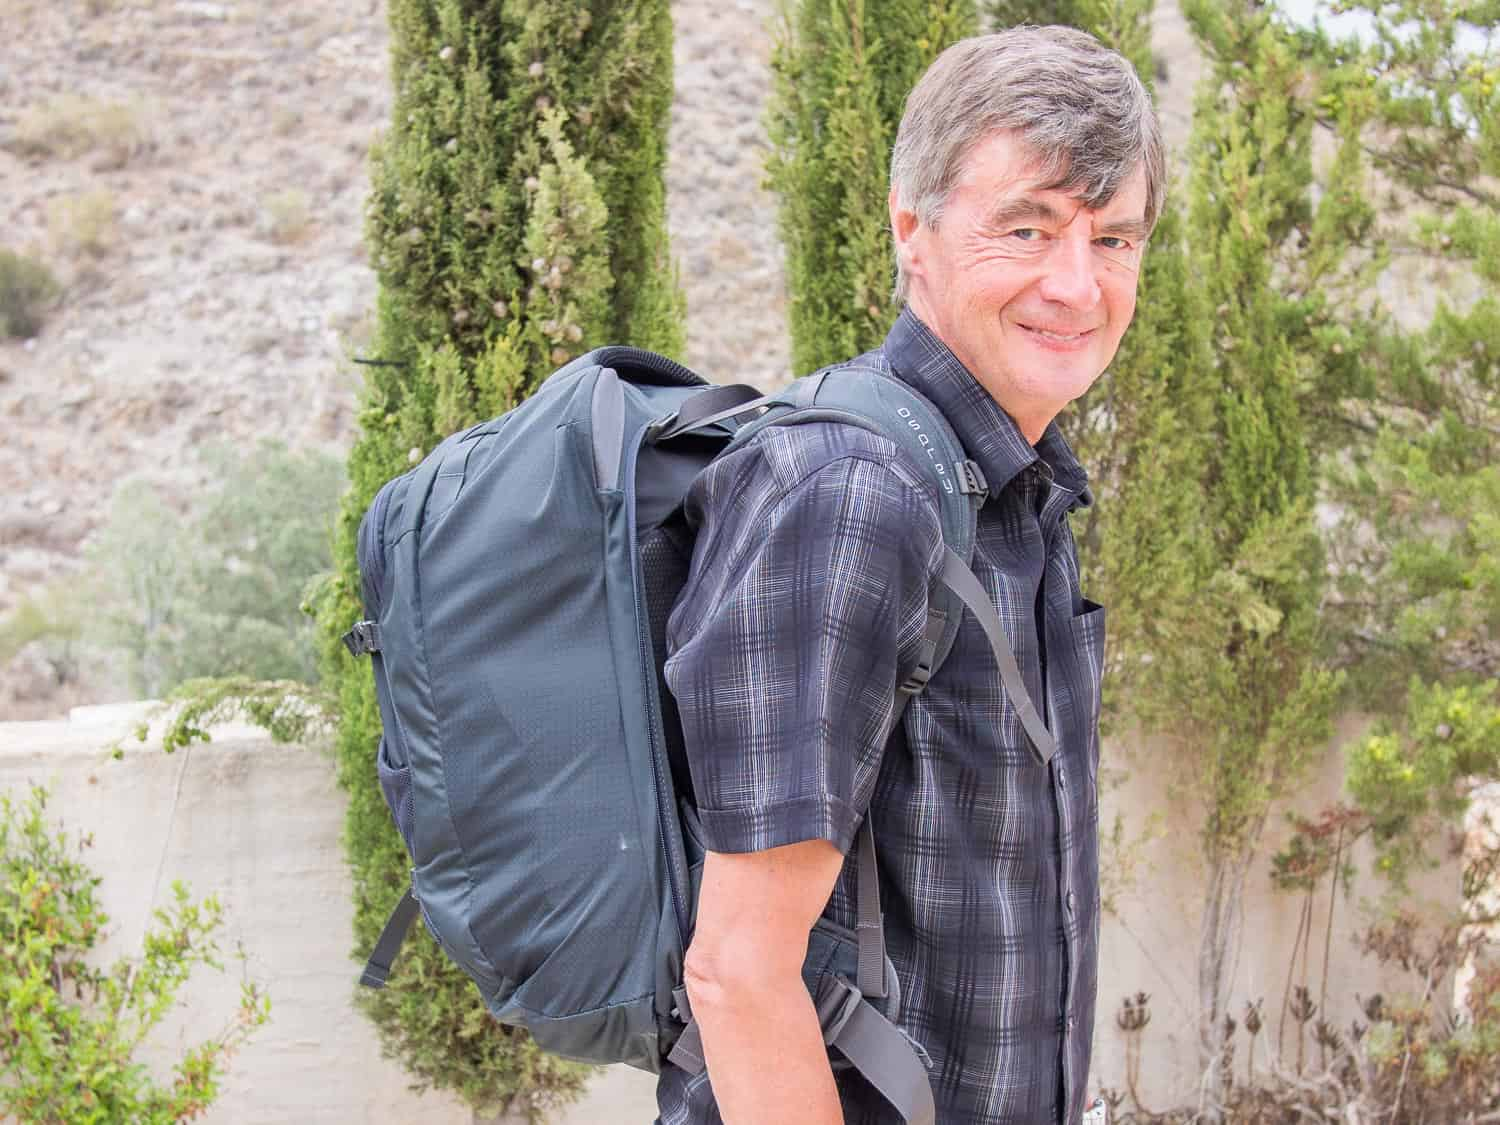 The Carry-On Traveller interviews: Dave the First-timer